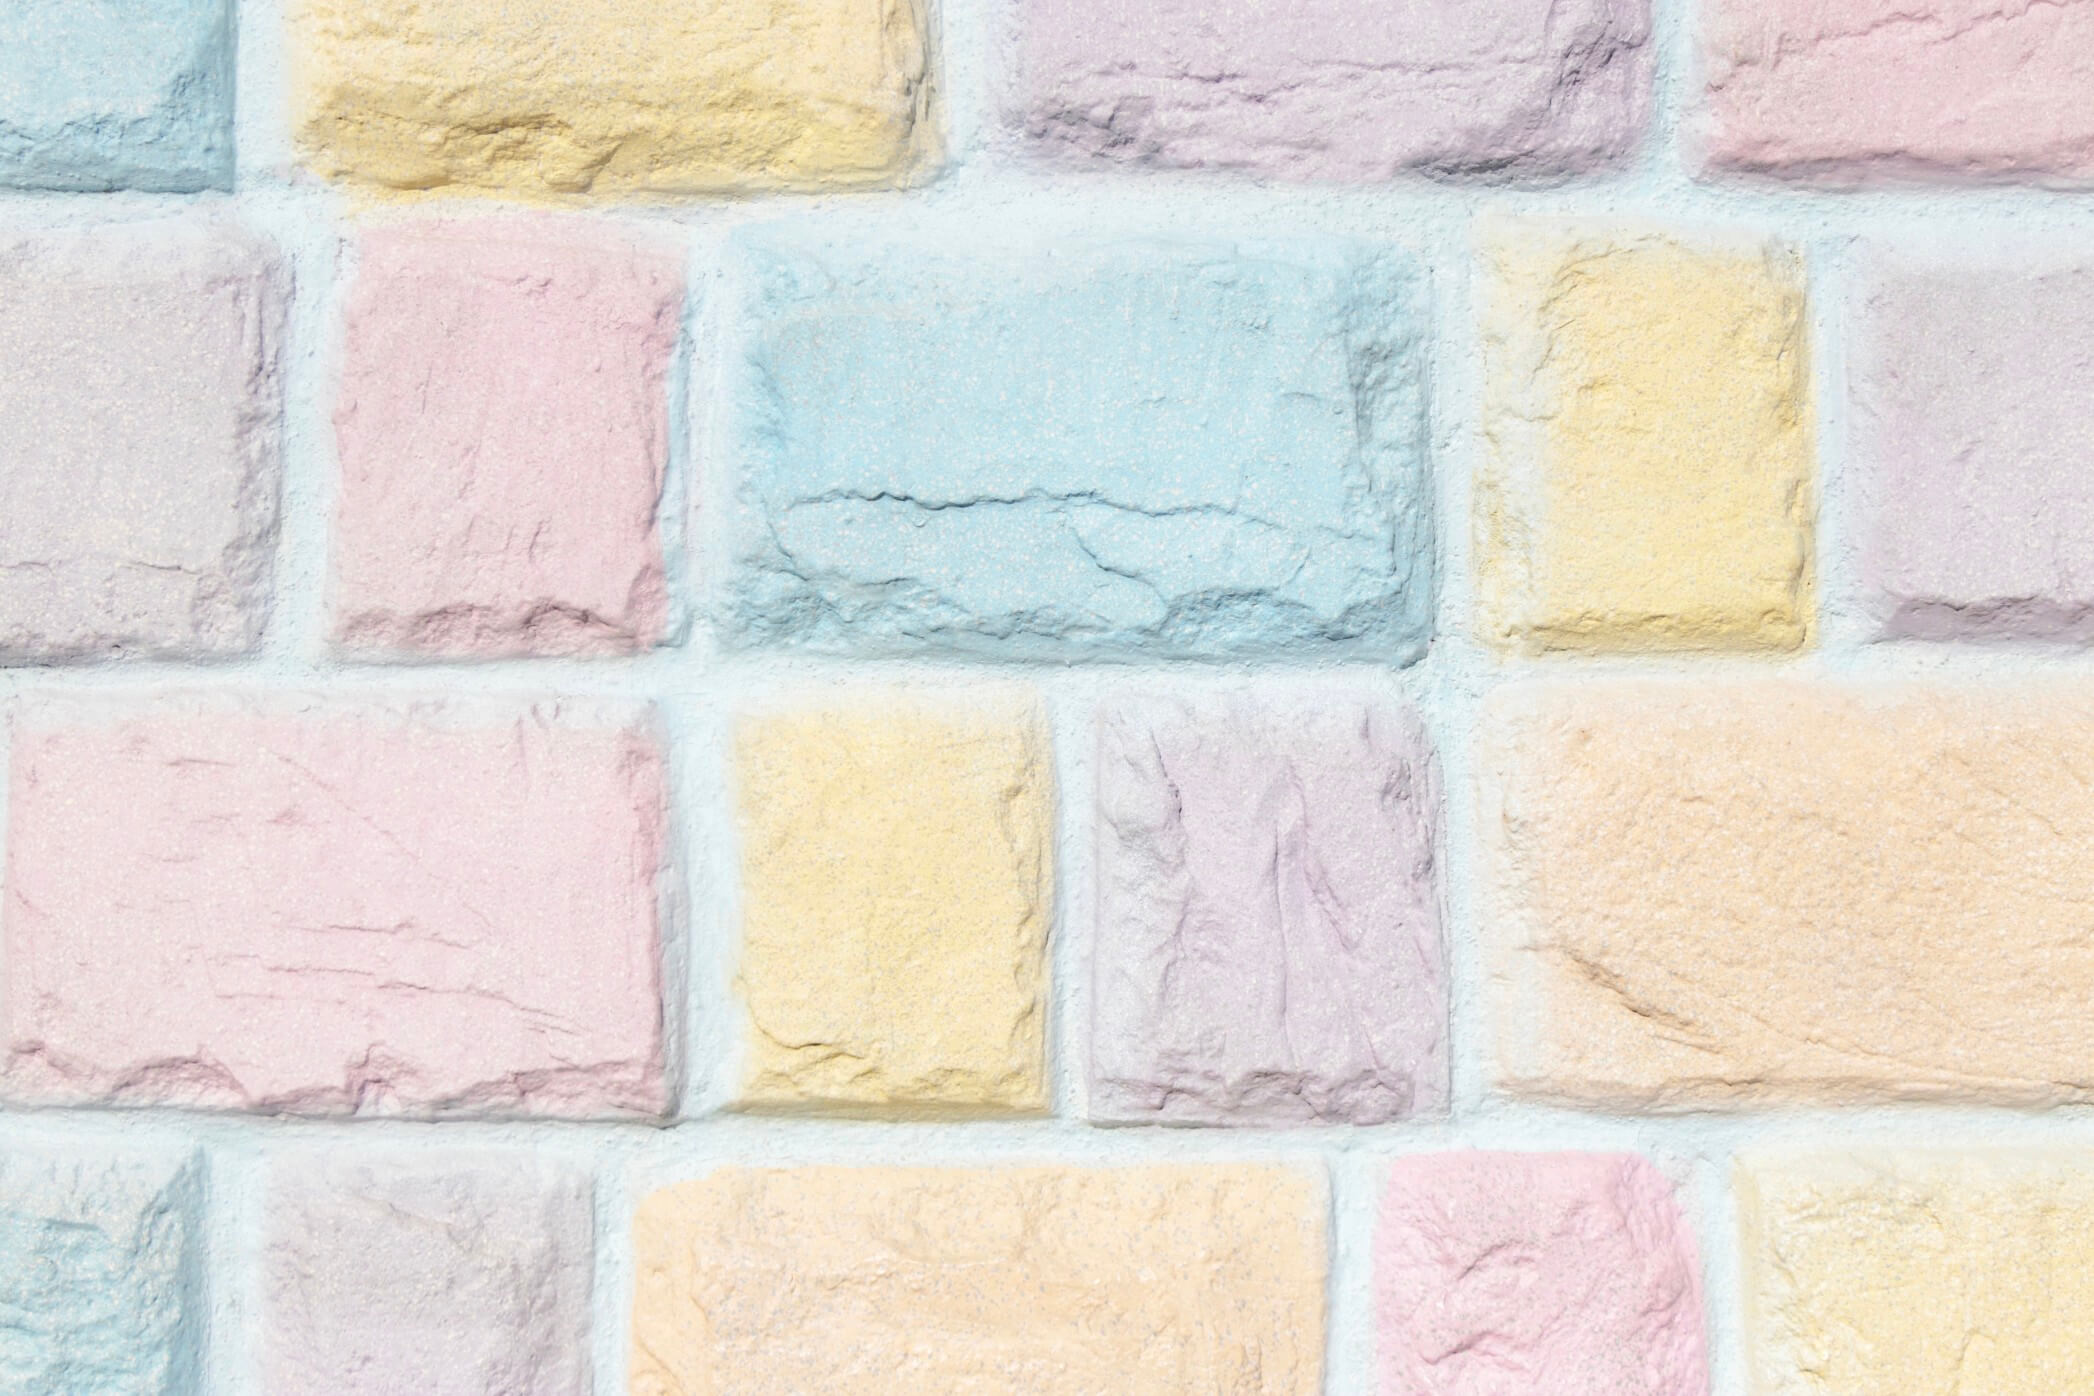 colorful-pastel-brick-wall-texture-background-pink-yellow-orange-purple-and-blue_t20_LO6dZK